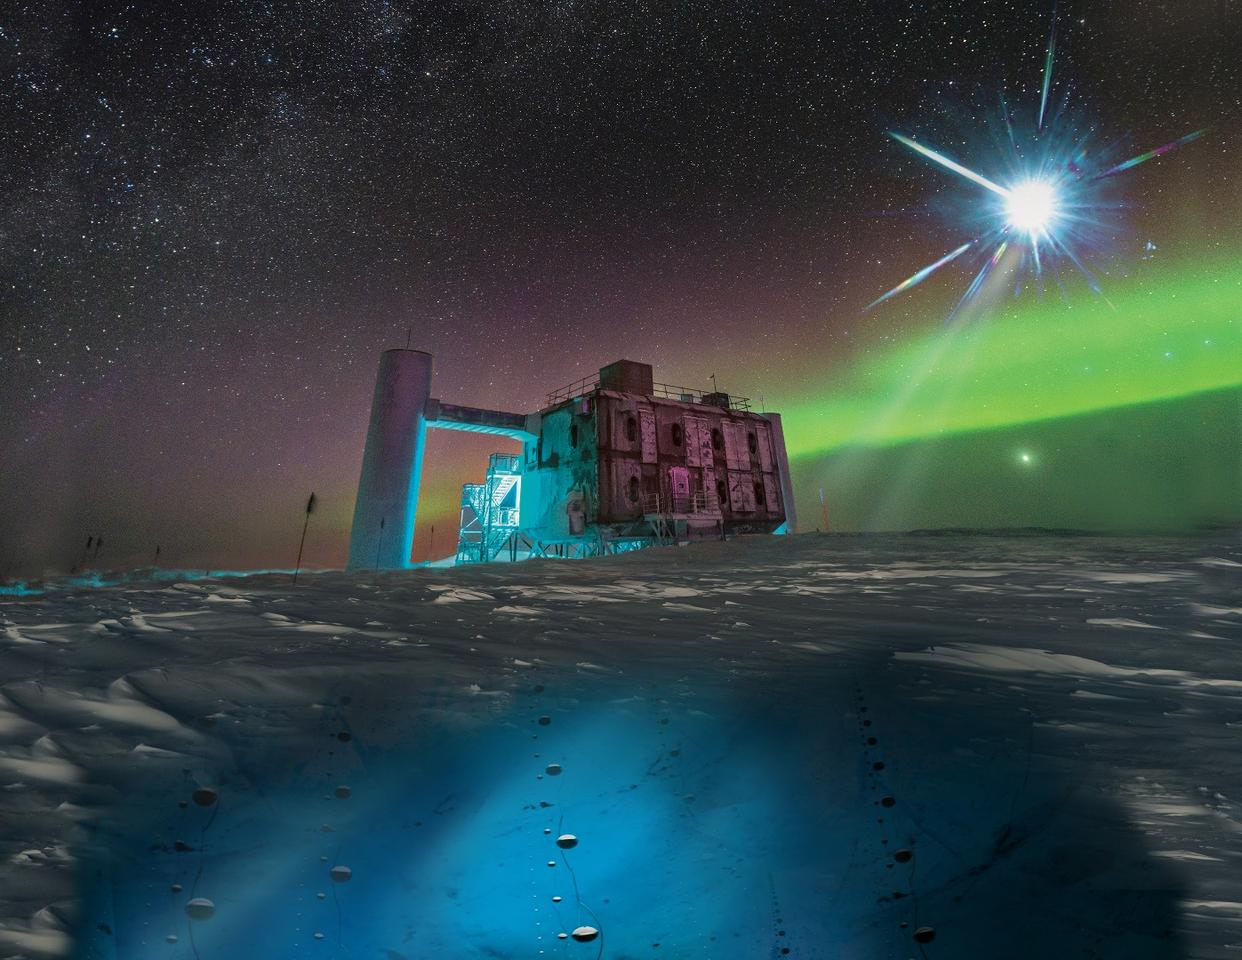 An artistic render of the IceCube facility, a blazar and the sensors that detect neutrinos under the ice